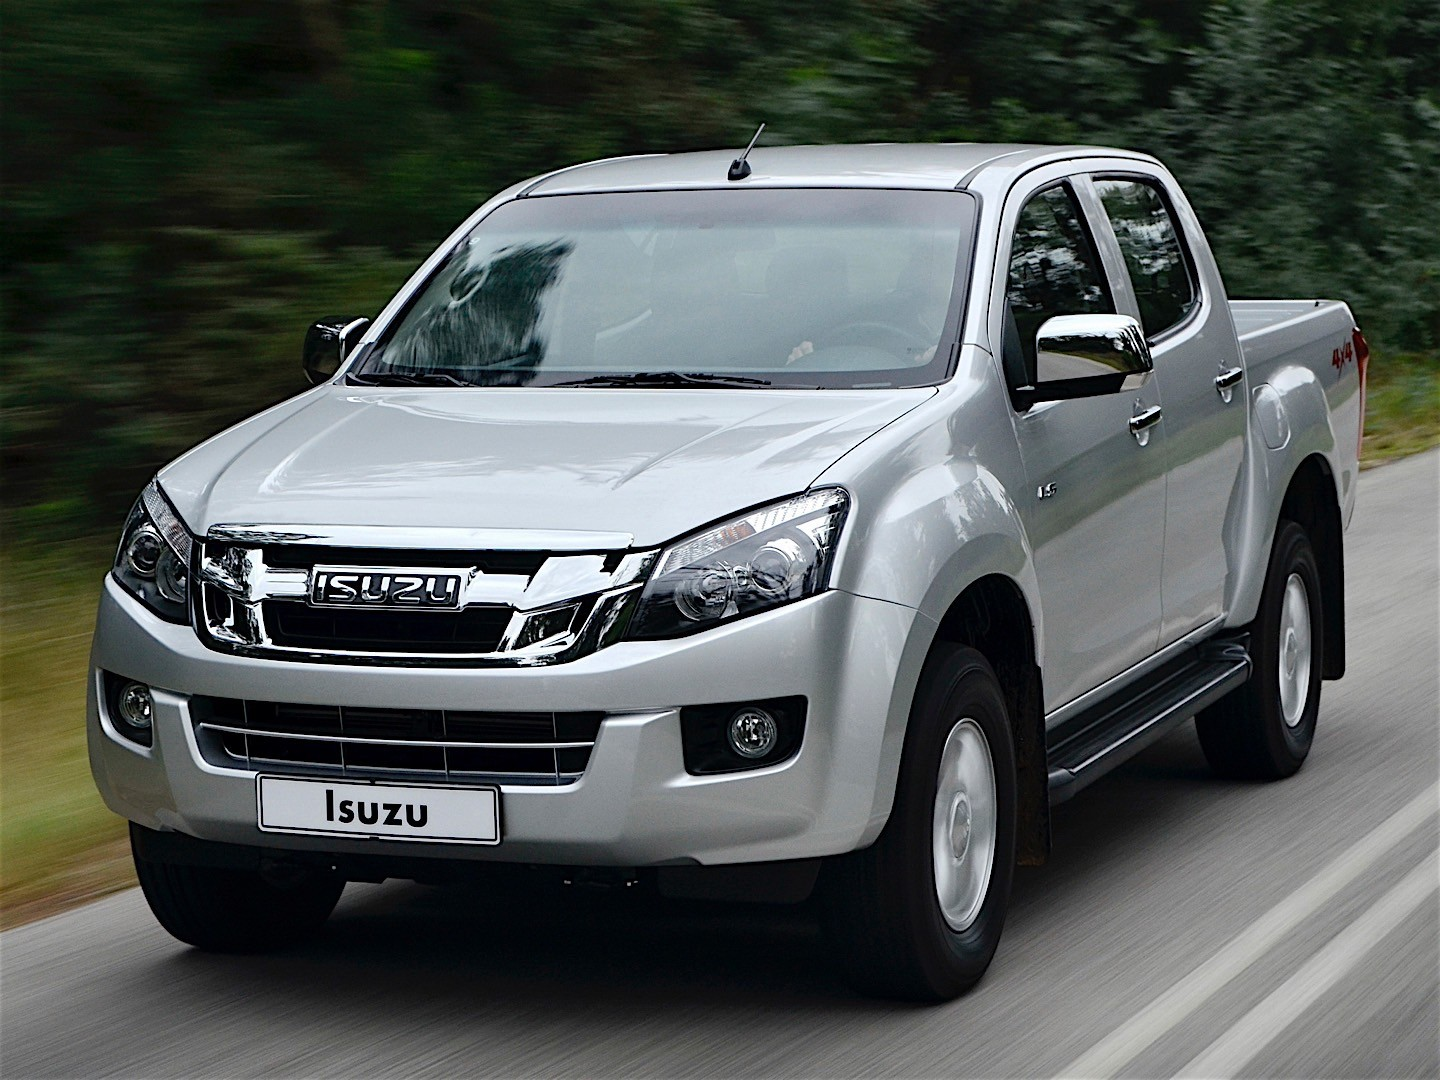 isuzu d max double cab 2012 2013 2014 2015 autoevolution. Black Bedroom Furniture Sets. Home Design Ideas